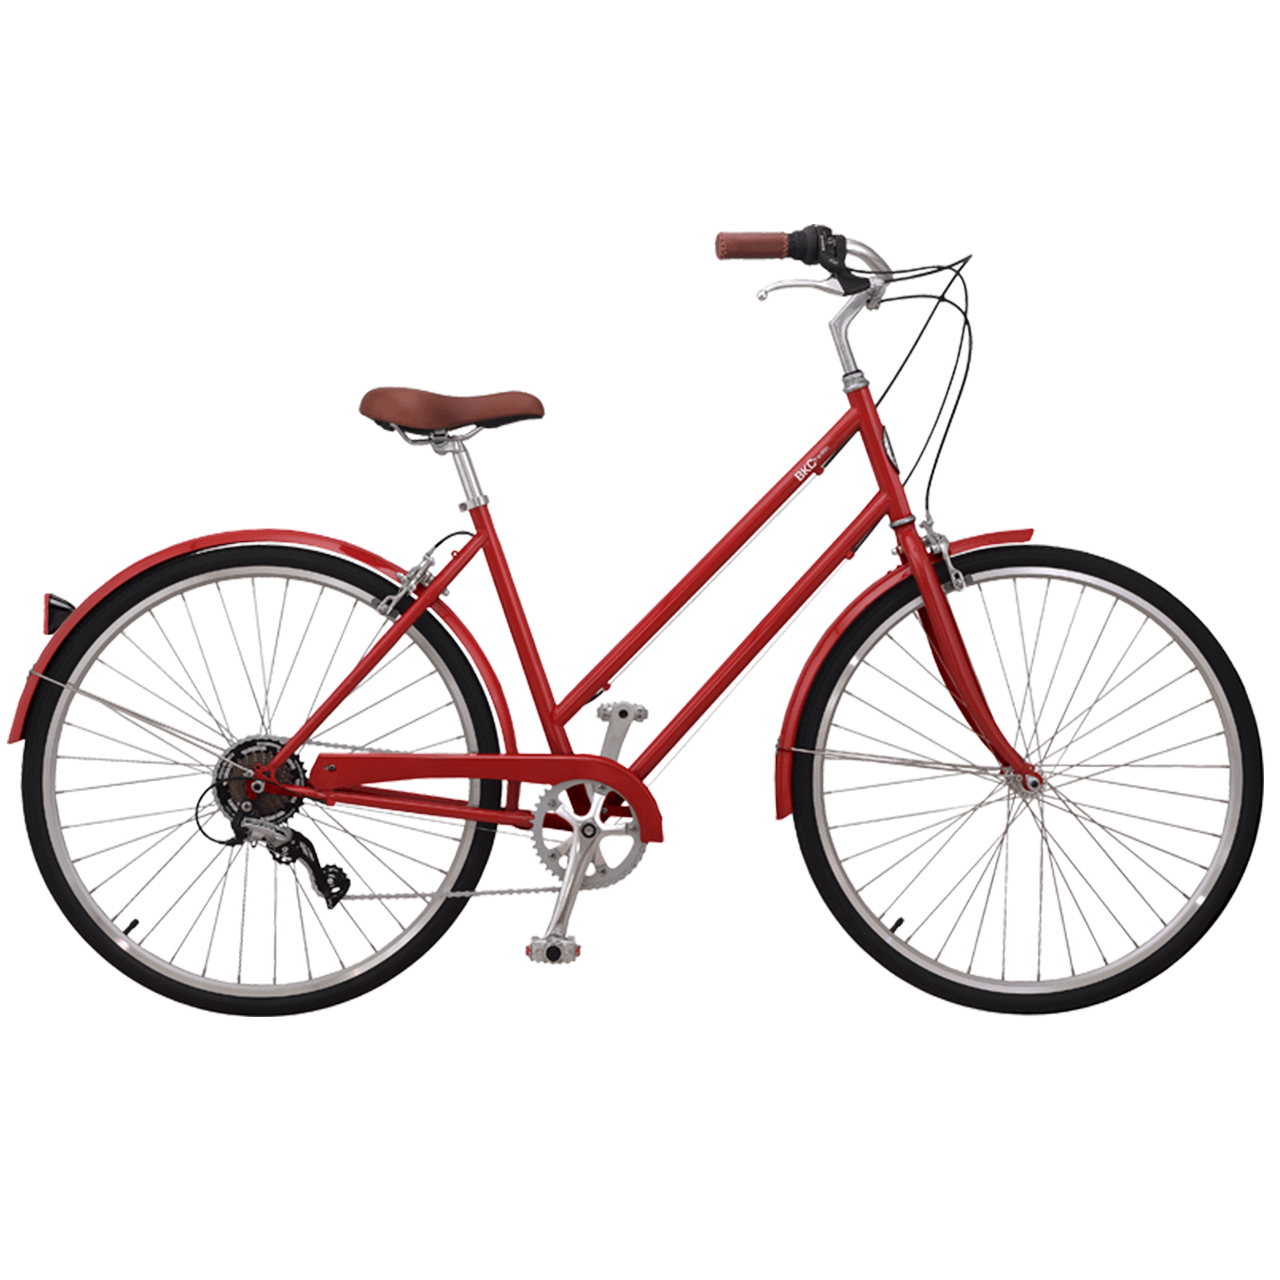 Brooklyn Bicycle Co. Franklin 7 S/M Red $500